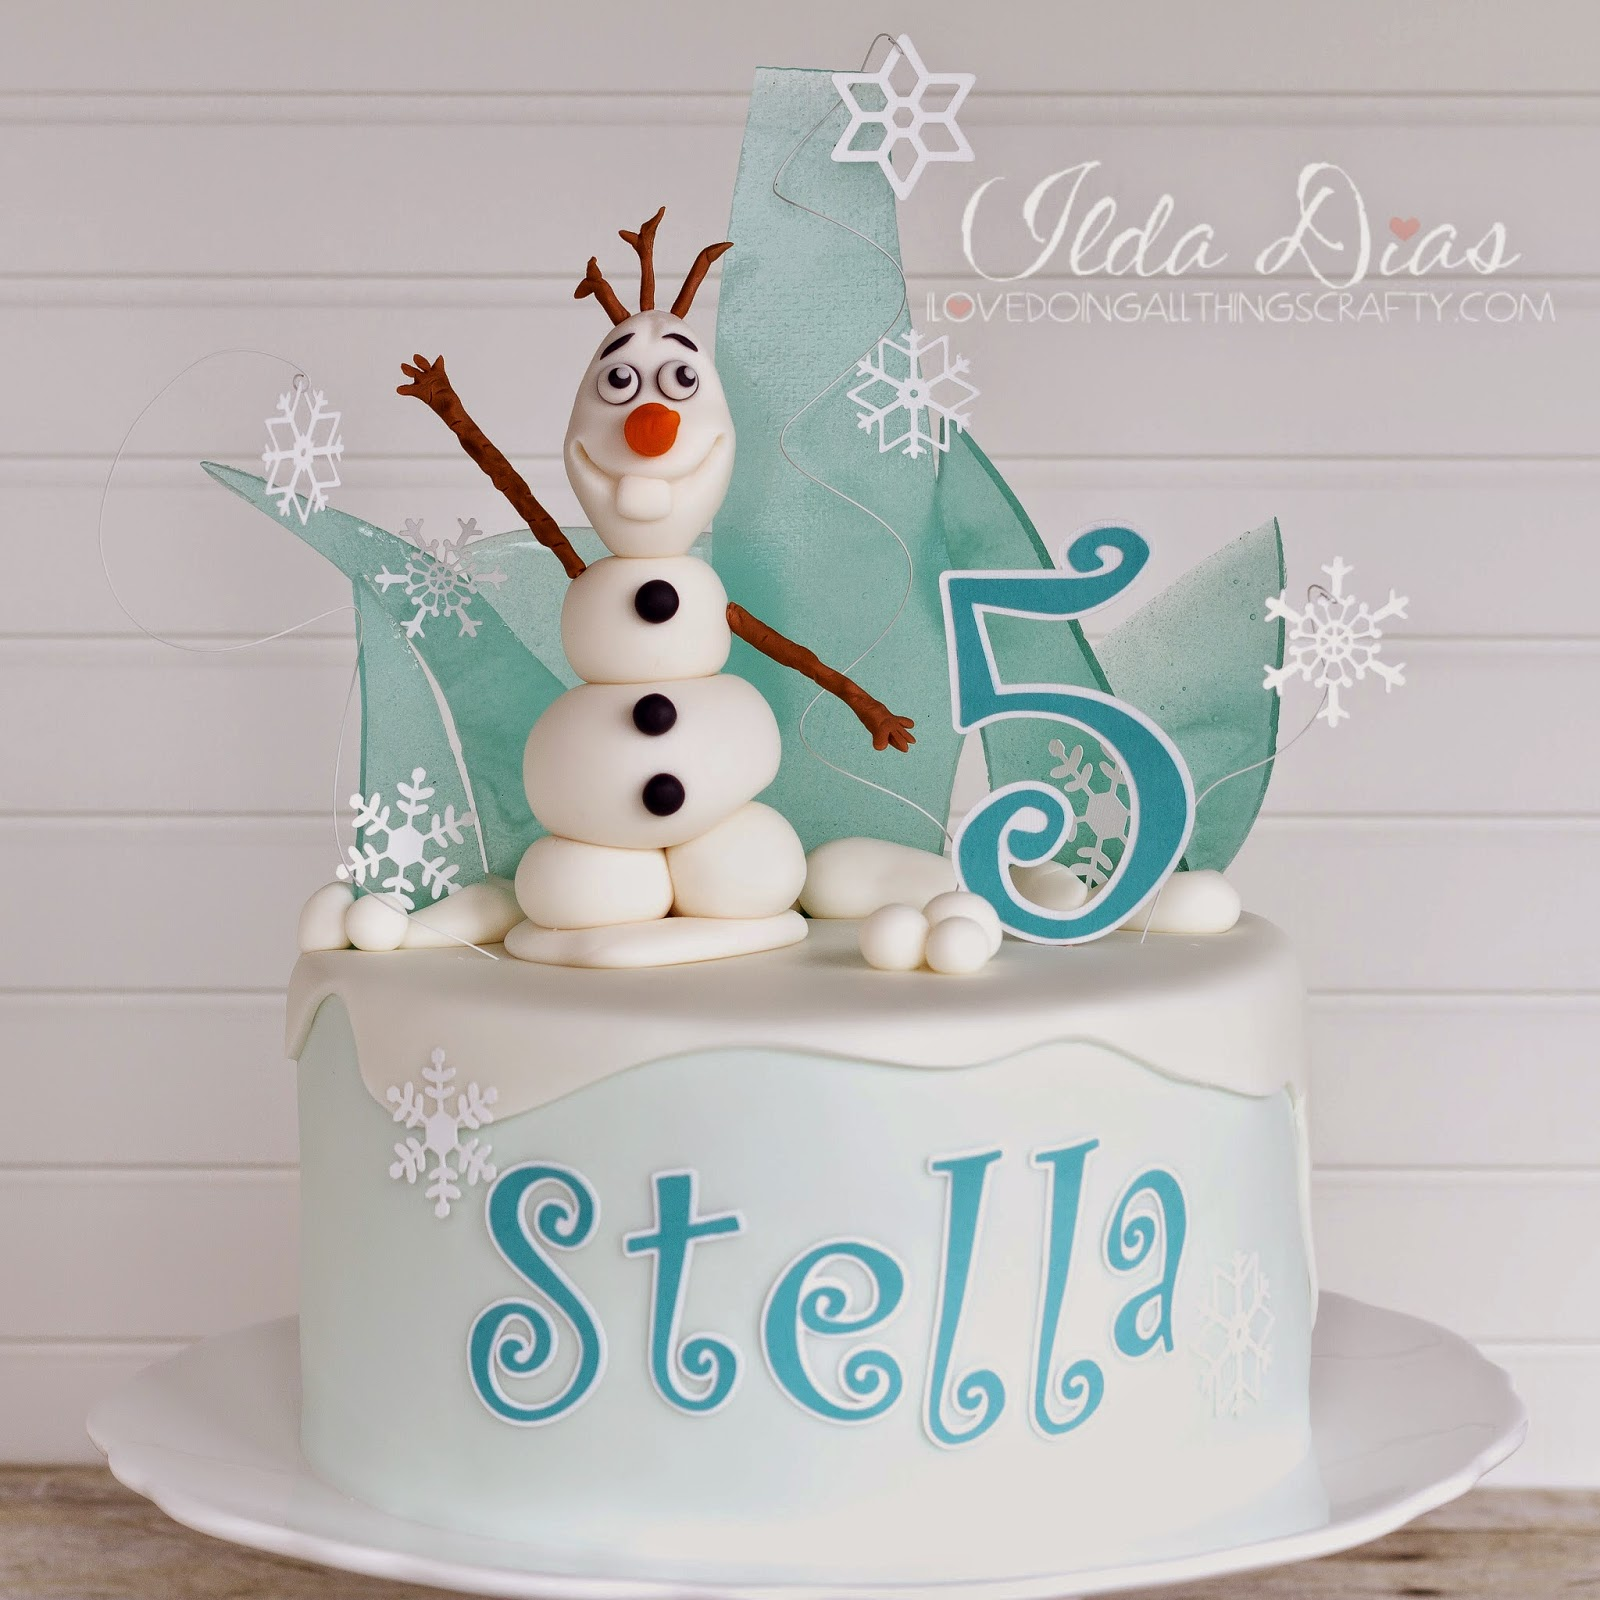 ... ove (D)oing (A)ll Things Crafty!: Frozen Themed Birthday Cake and Card